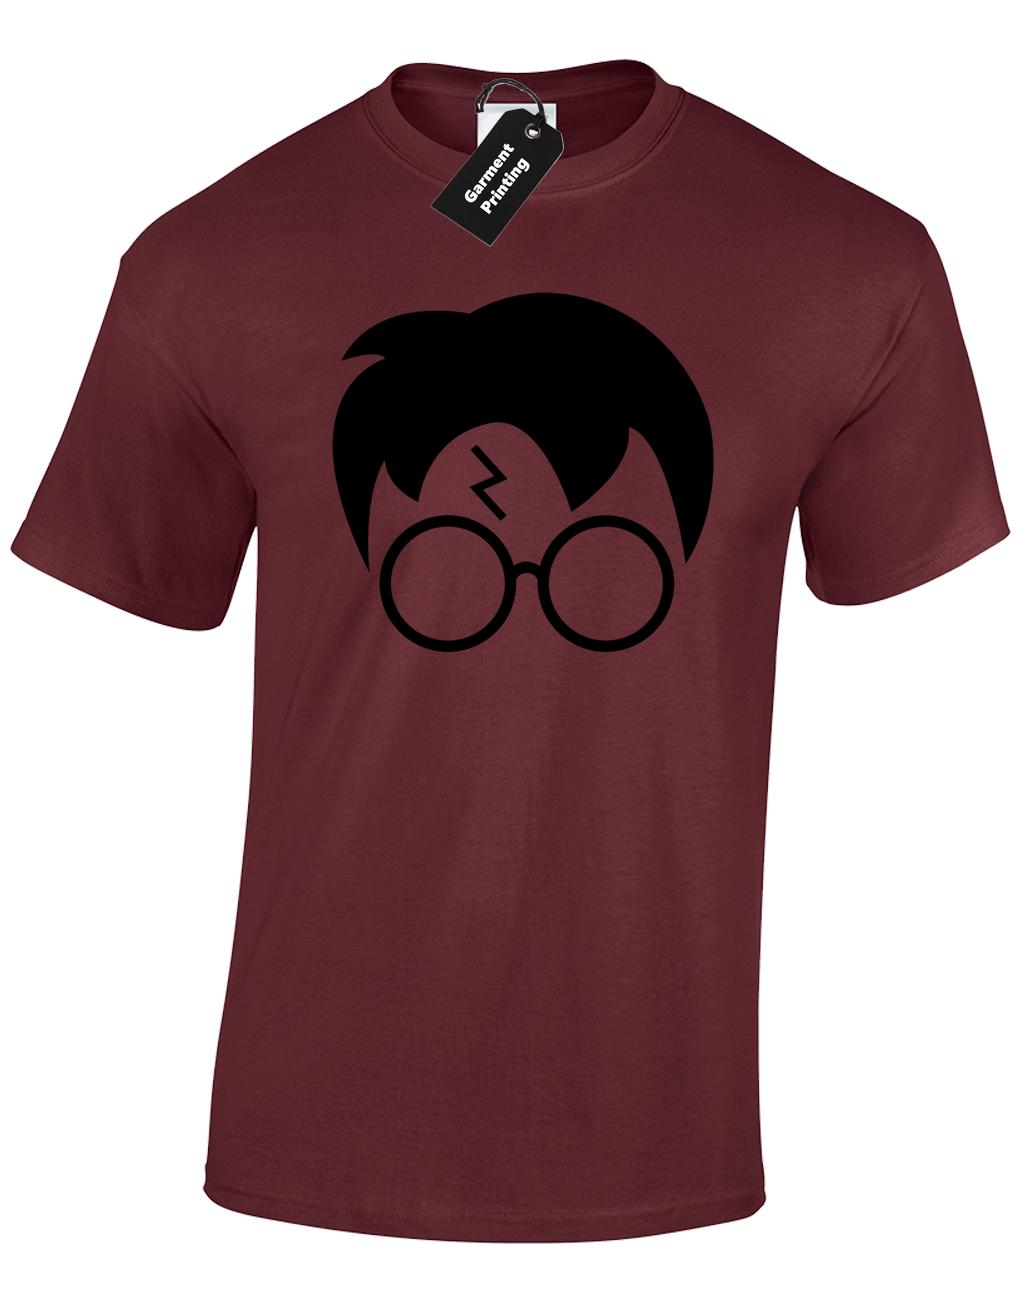 POTTER FACE MENS T SHIRT FUNNY TUMBLR TEE FAN NEW HERMIONE MAGIC WIZARD FAN GIFT Cool Casual pride t shirt